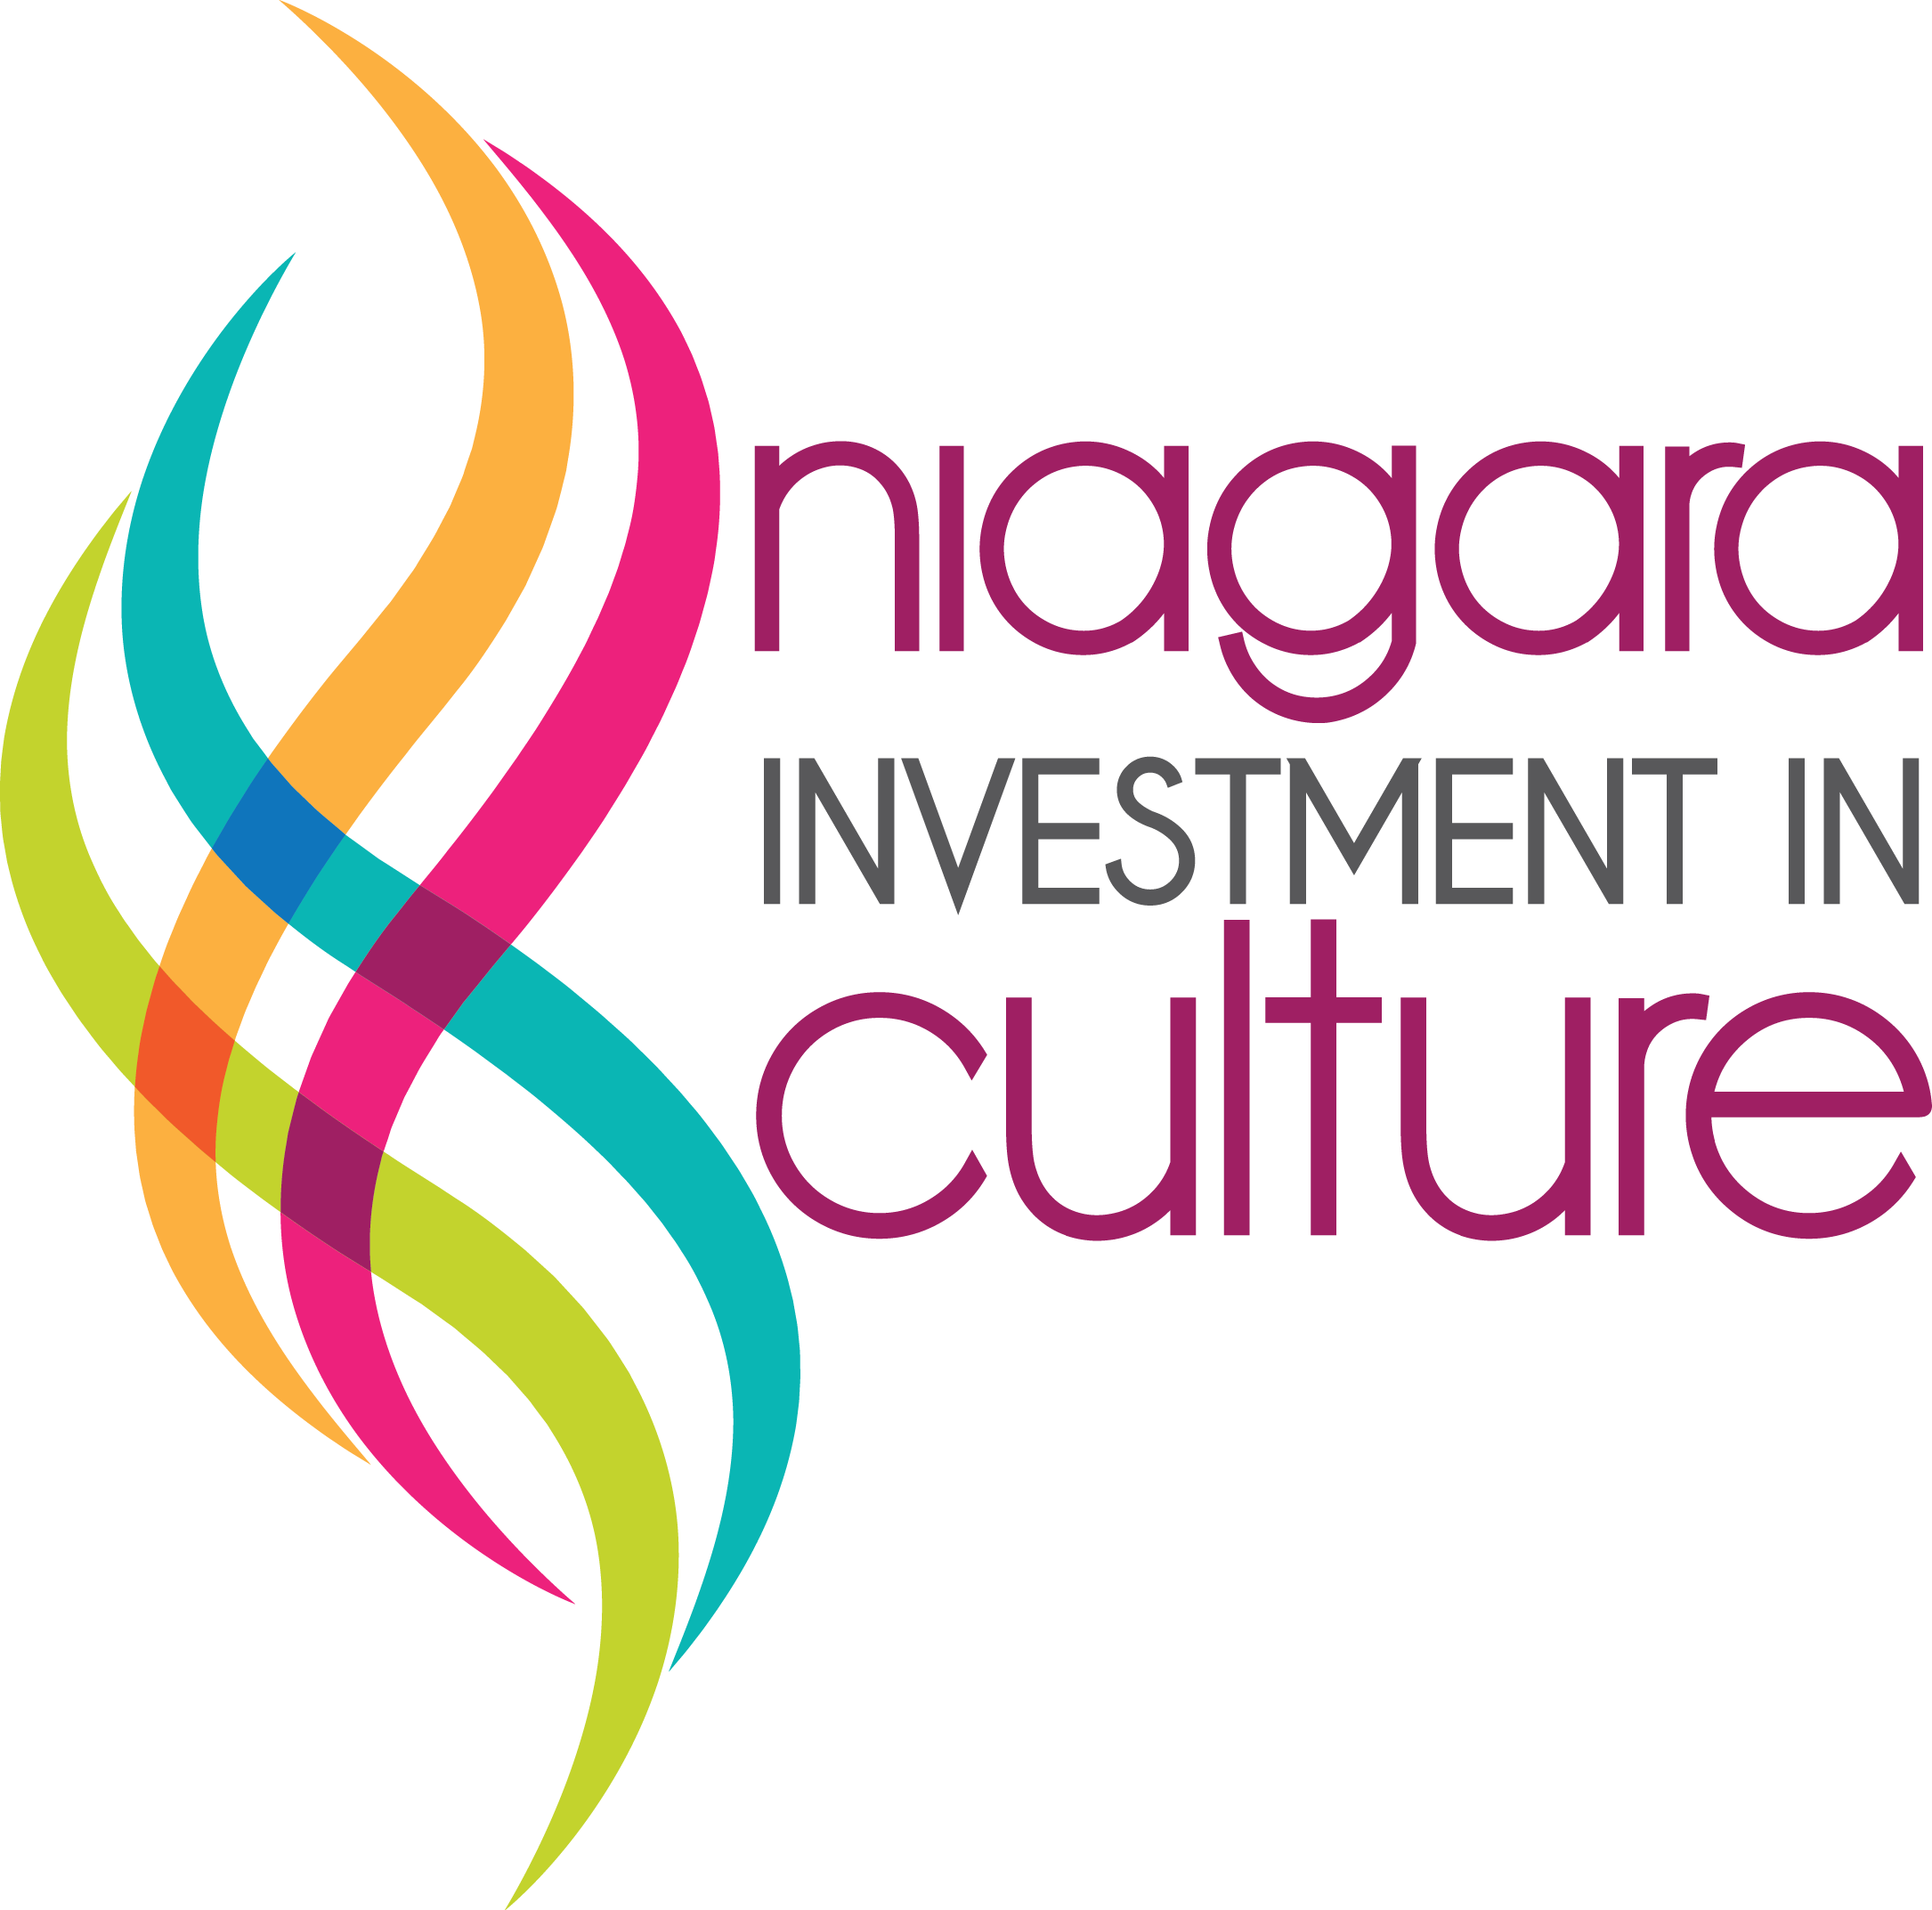 Niagara Investment in Culture Logo